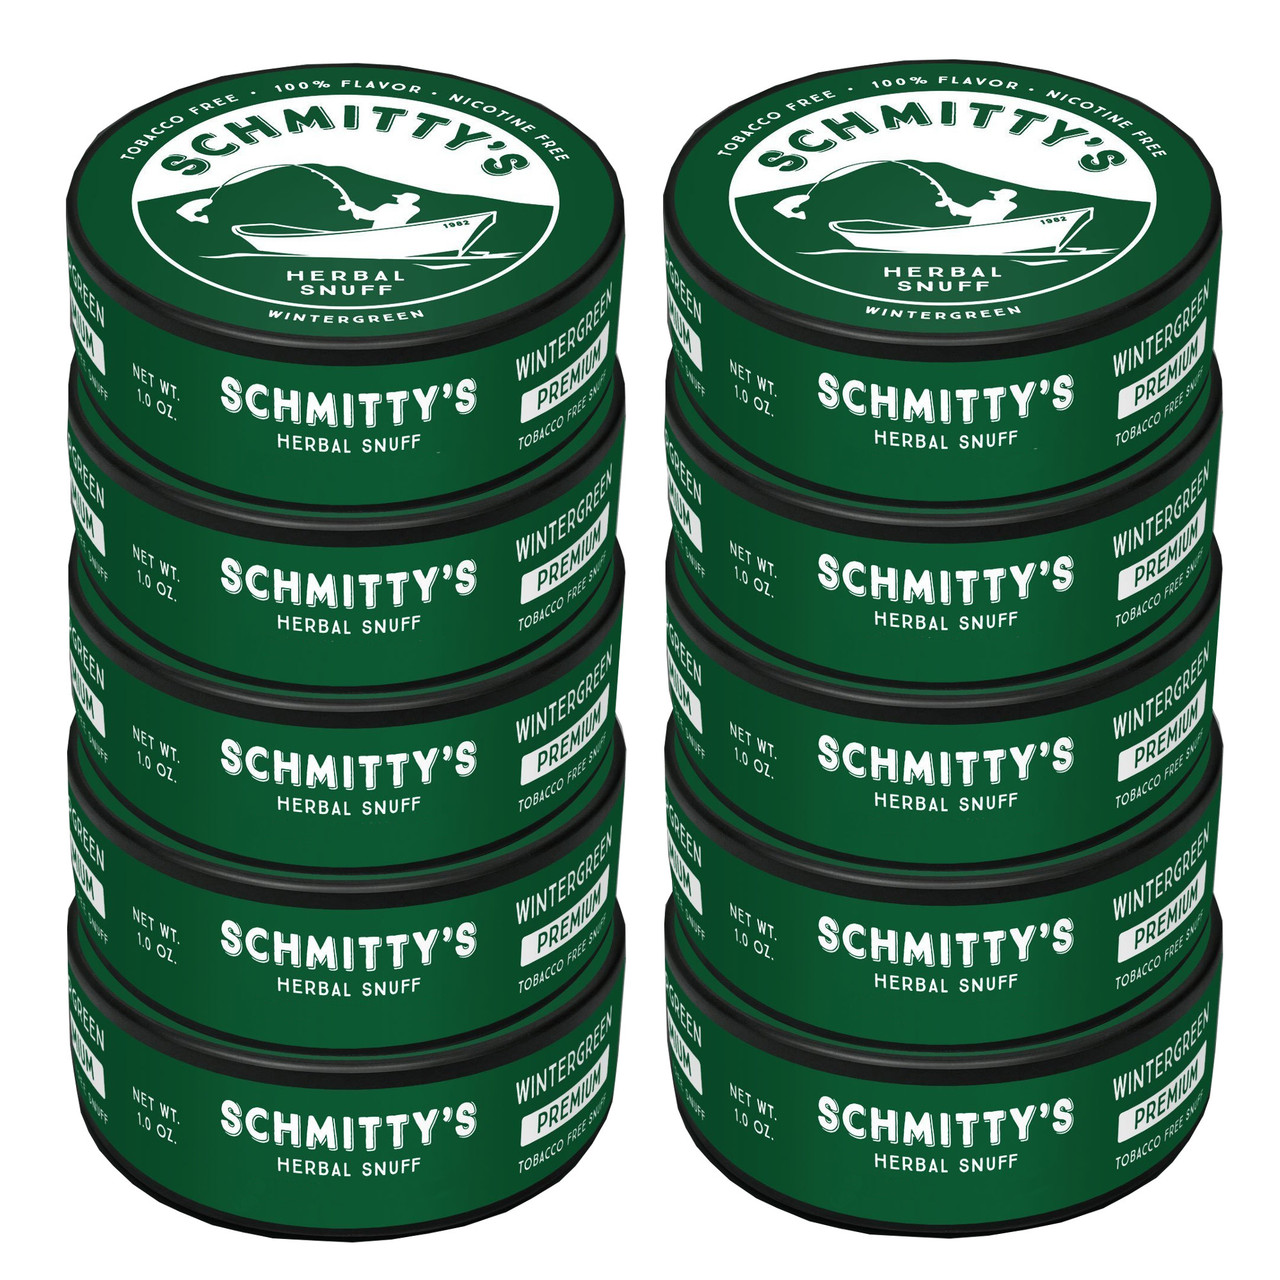 Schmitty's Herbal Snuff Wintergreen 10 Cans